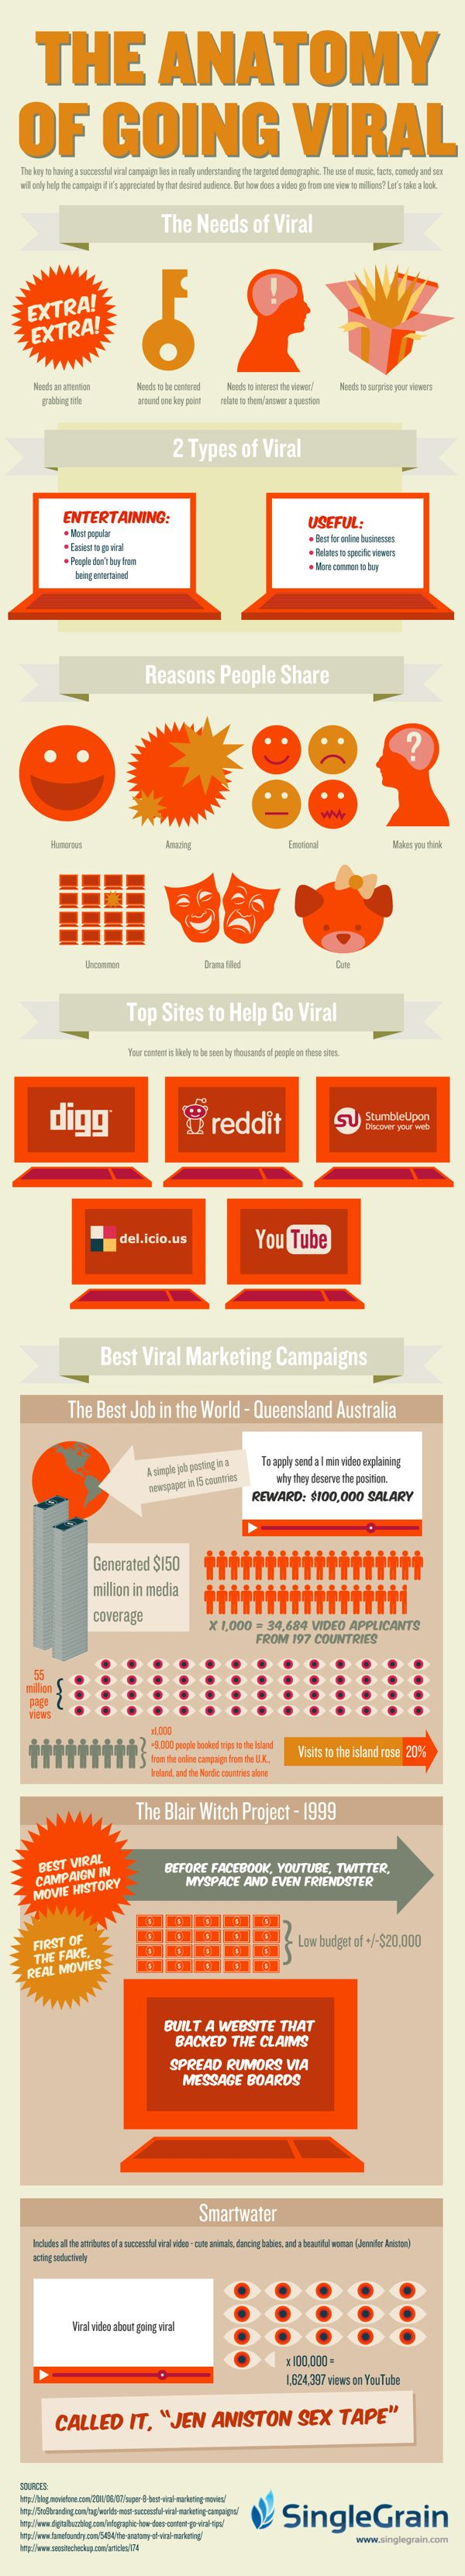 15 Informative 2012 Marketing Infographics.     #UX: The Anatomy of Viral Marketing